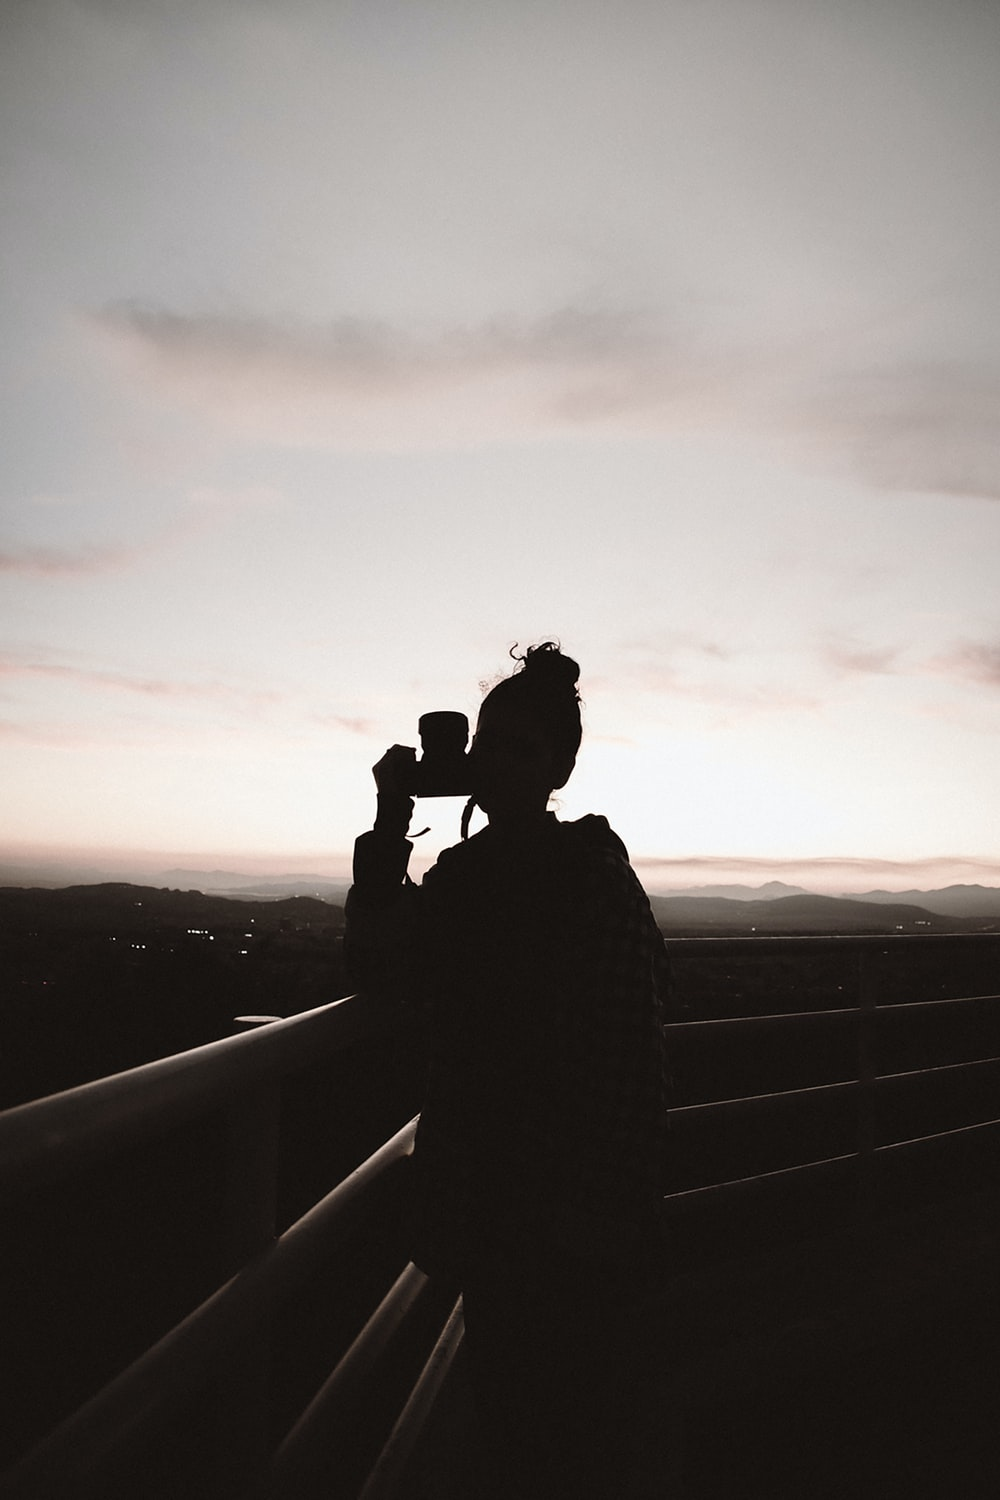 silhouette of person standing and holding camera